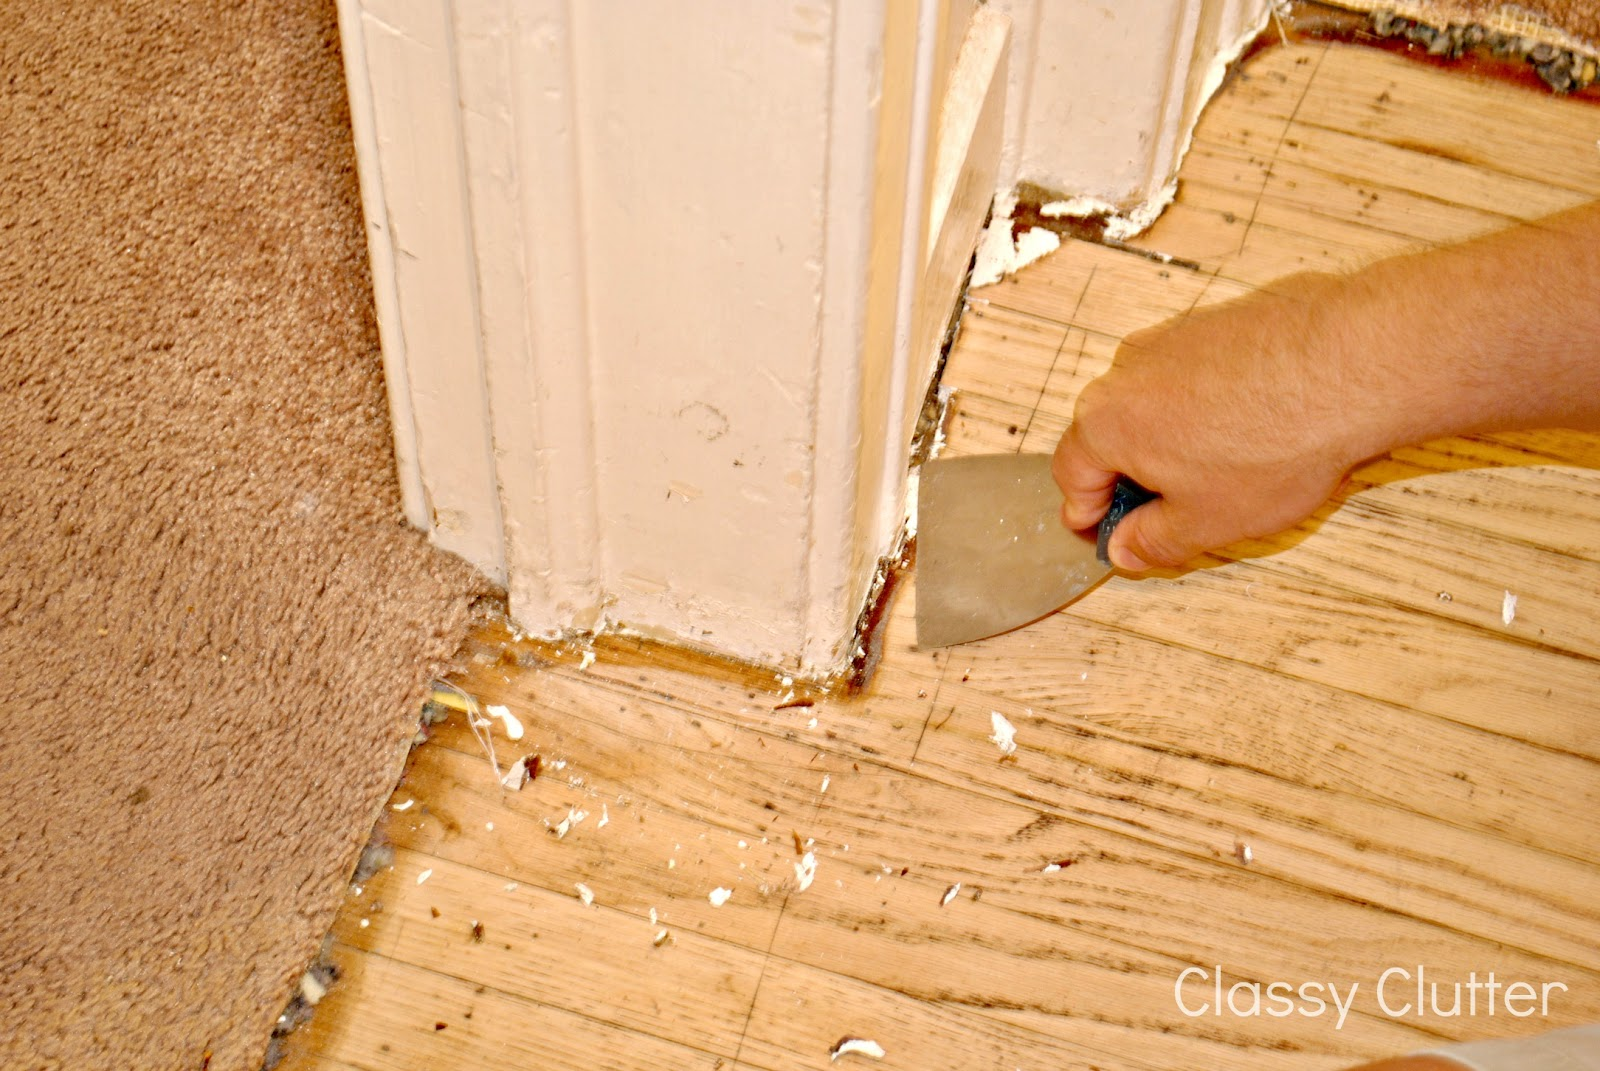 How to remove carpet and refinish wood floors part 1 classy clutter - Remove carpet stains ...